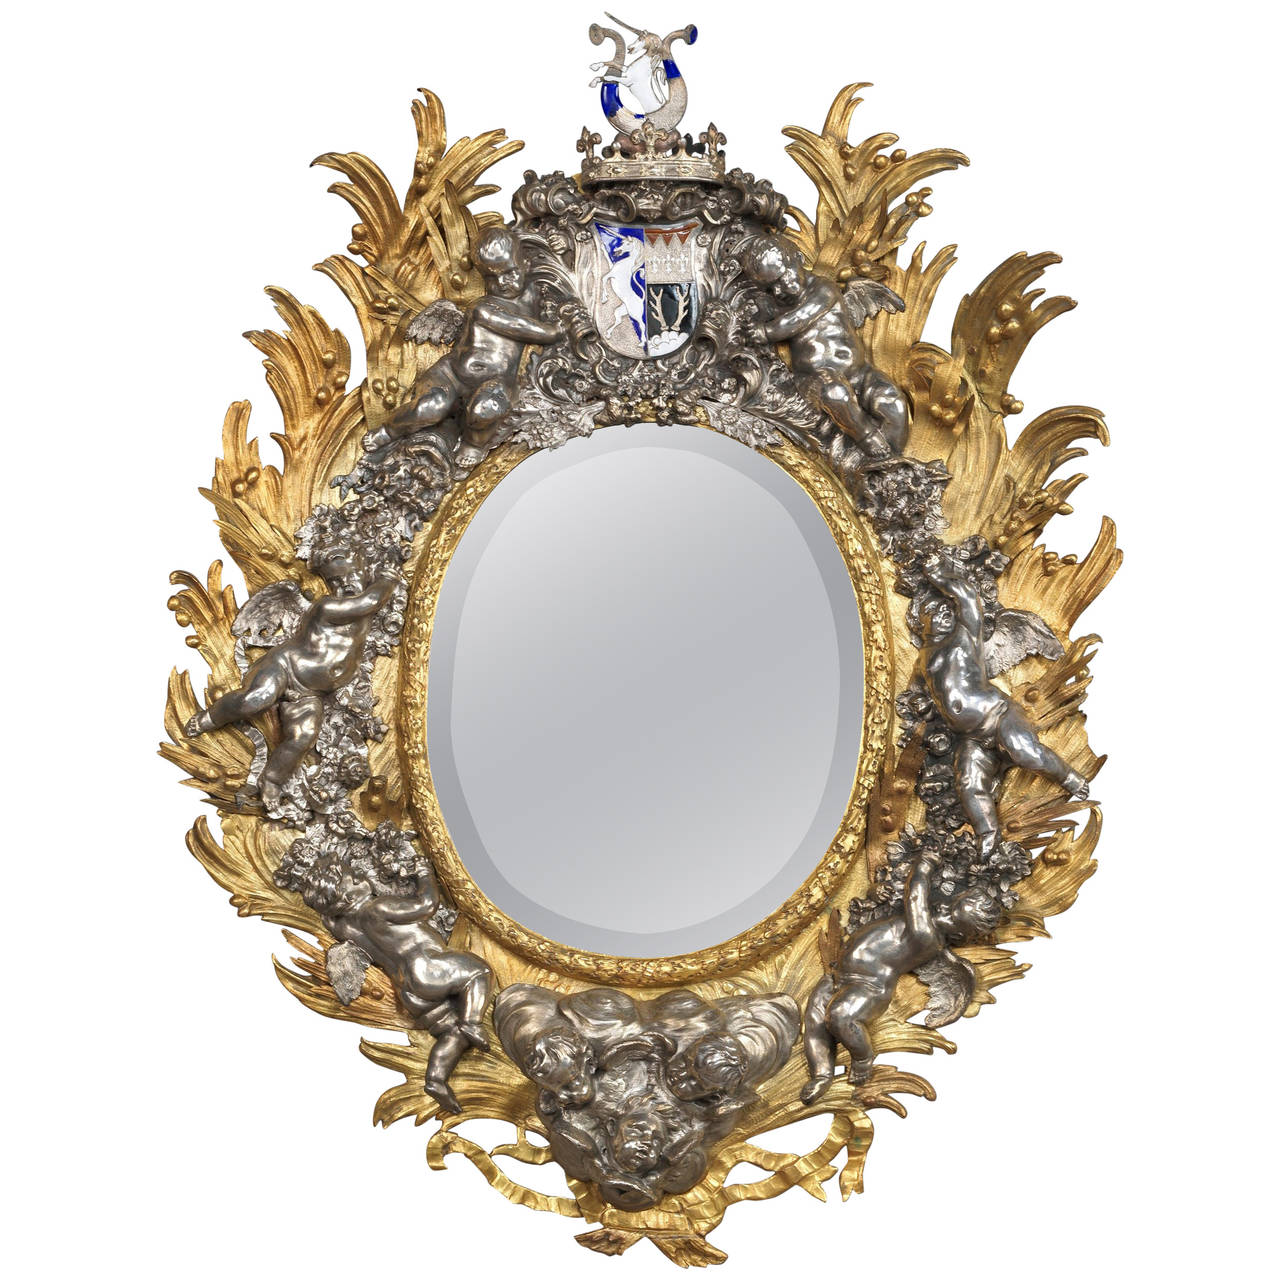 Baroque style armorial mirror at 1stdibs for Baroque mirror